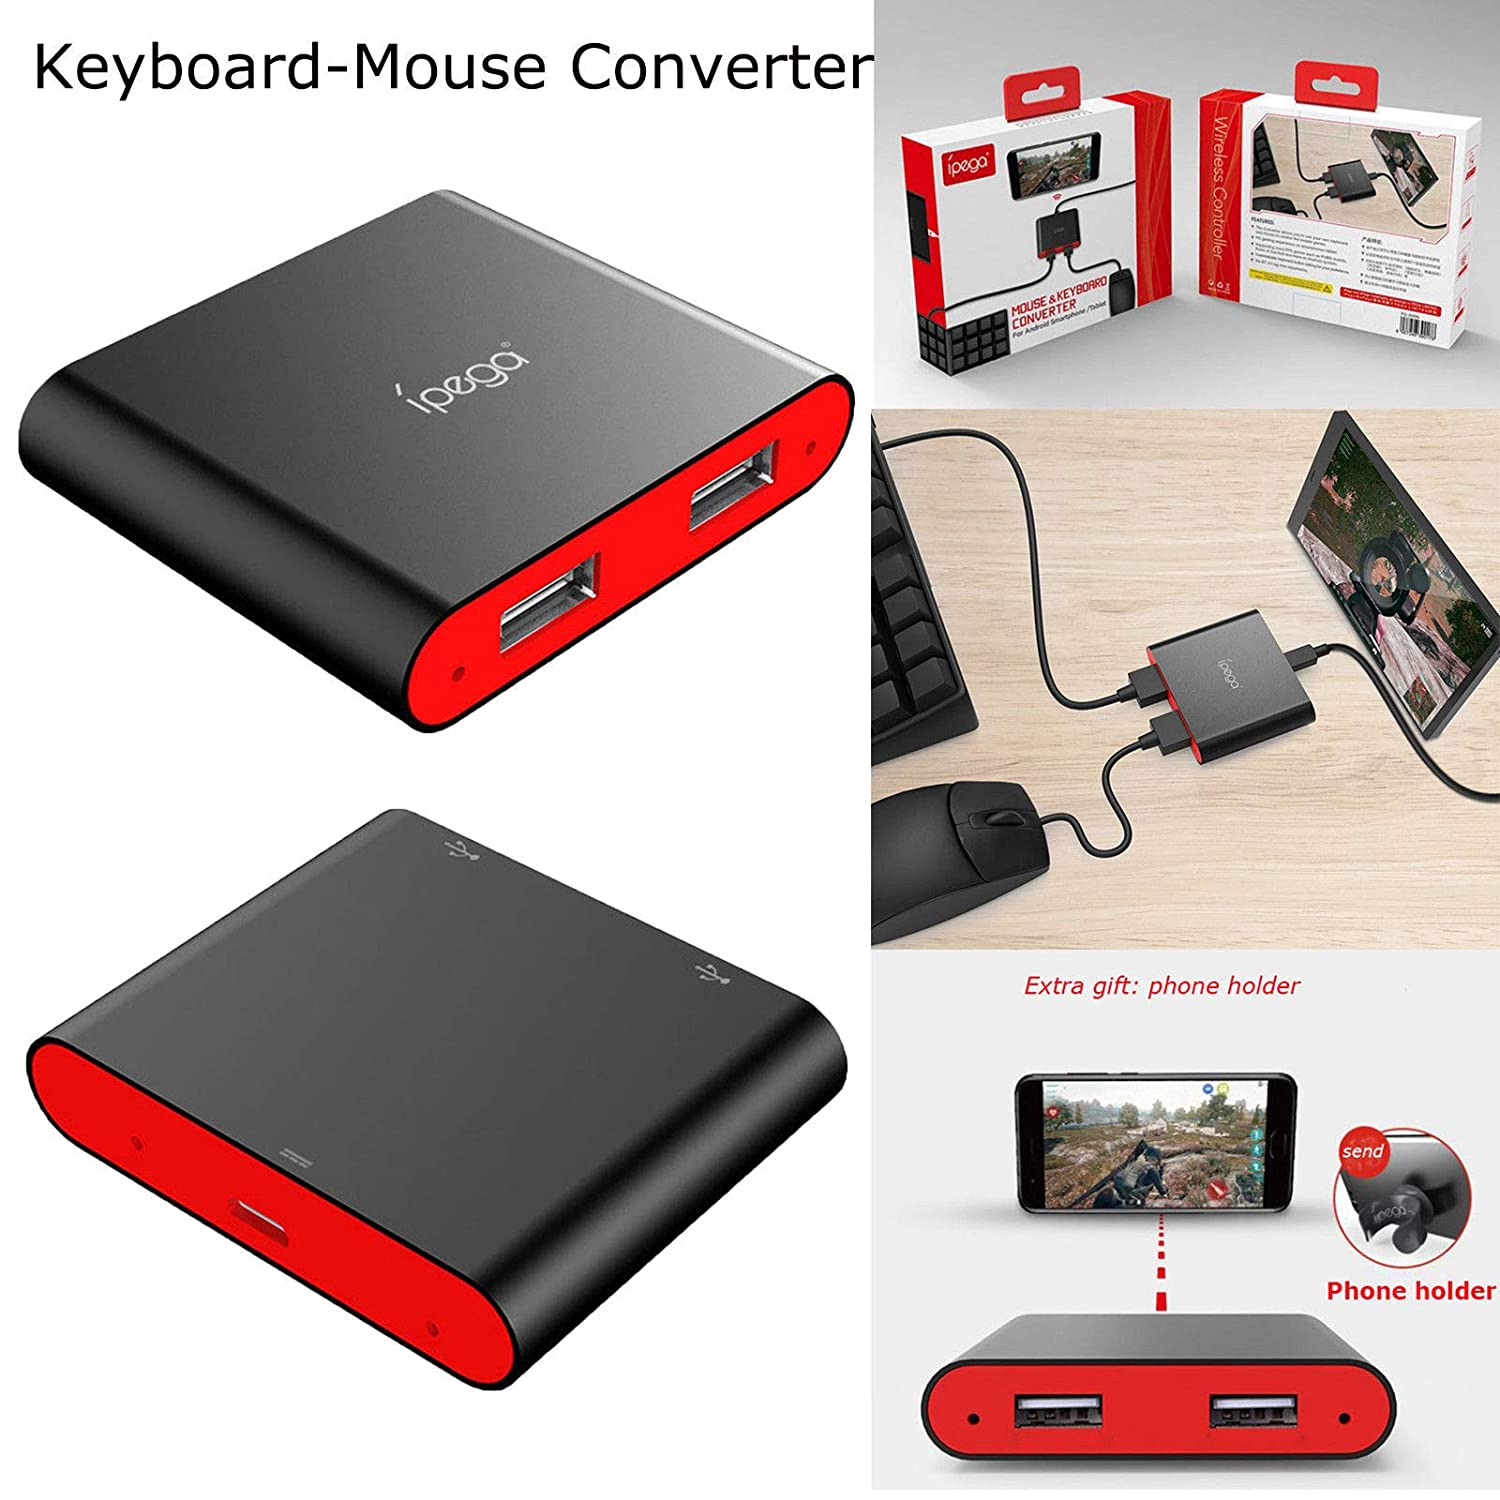 916b3c3b221 Amazon.in: Buy Microware IPEGA PG-9116 Bluetooth Keyboard & Mouse Converter  for Android Smart Phones/Tablet Online at Low Prices in India | Microware  ...